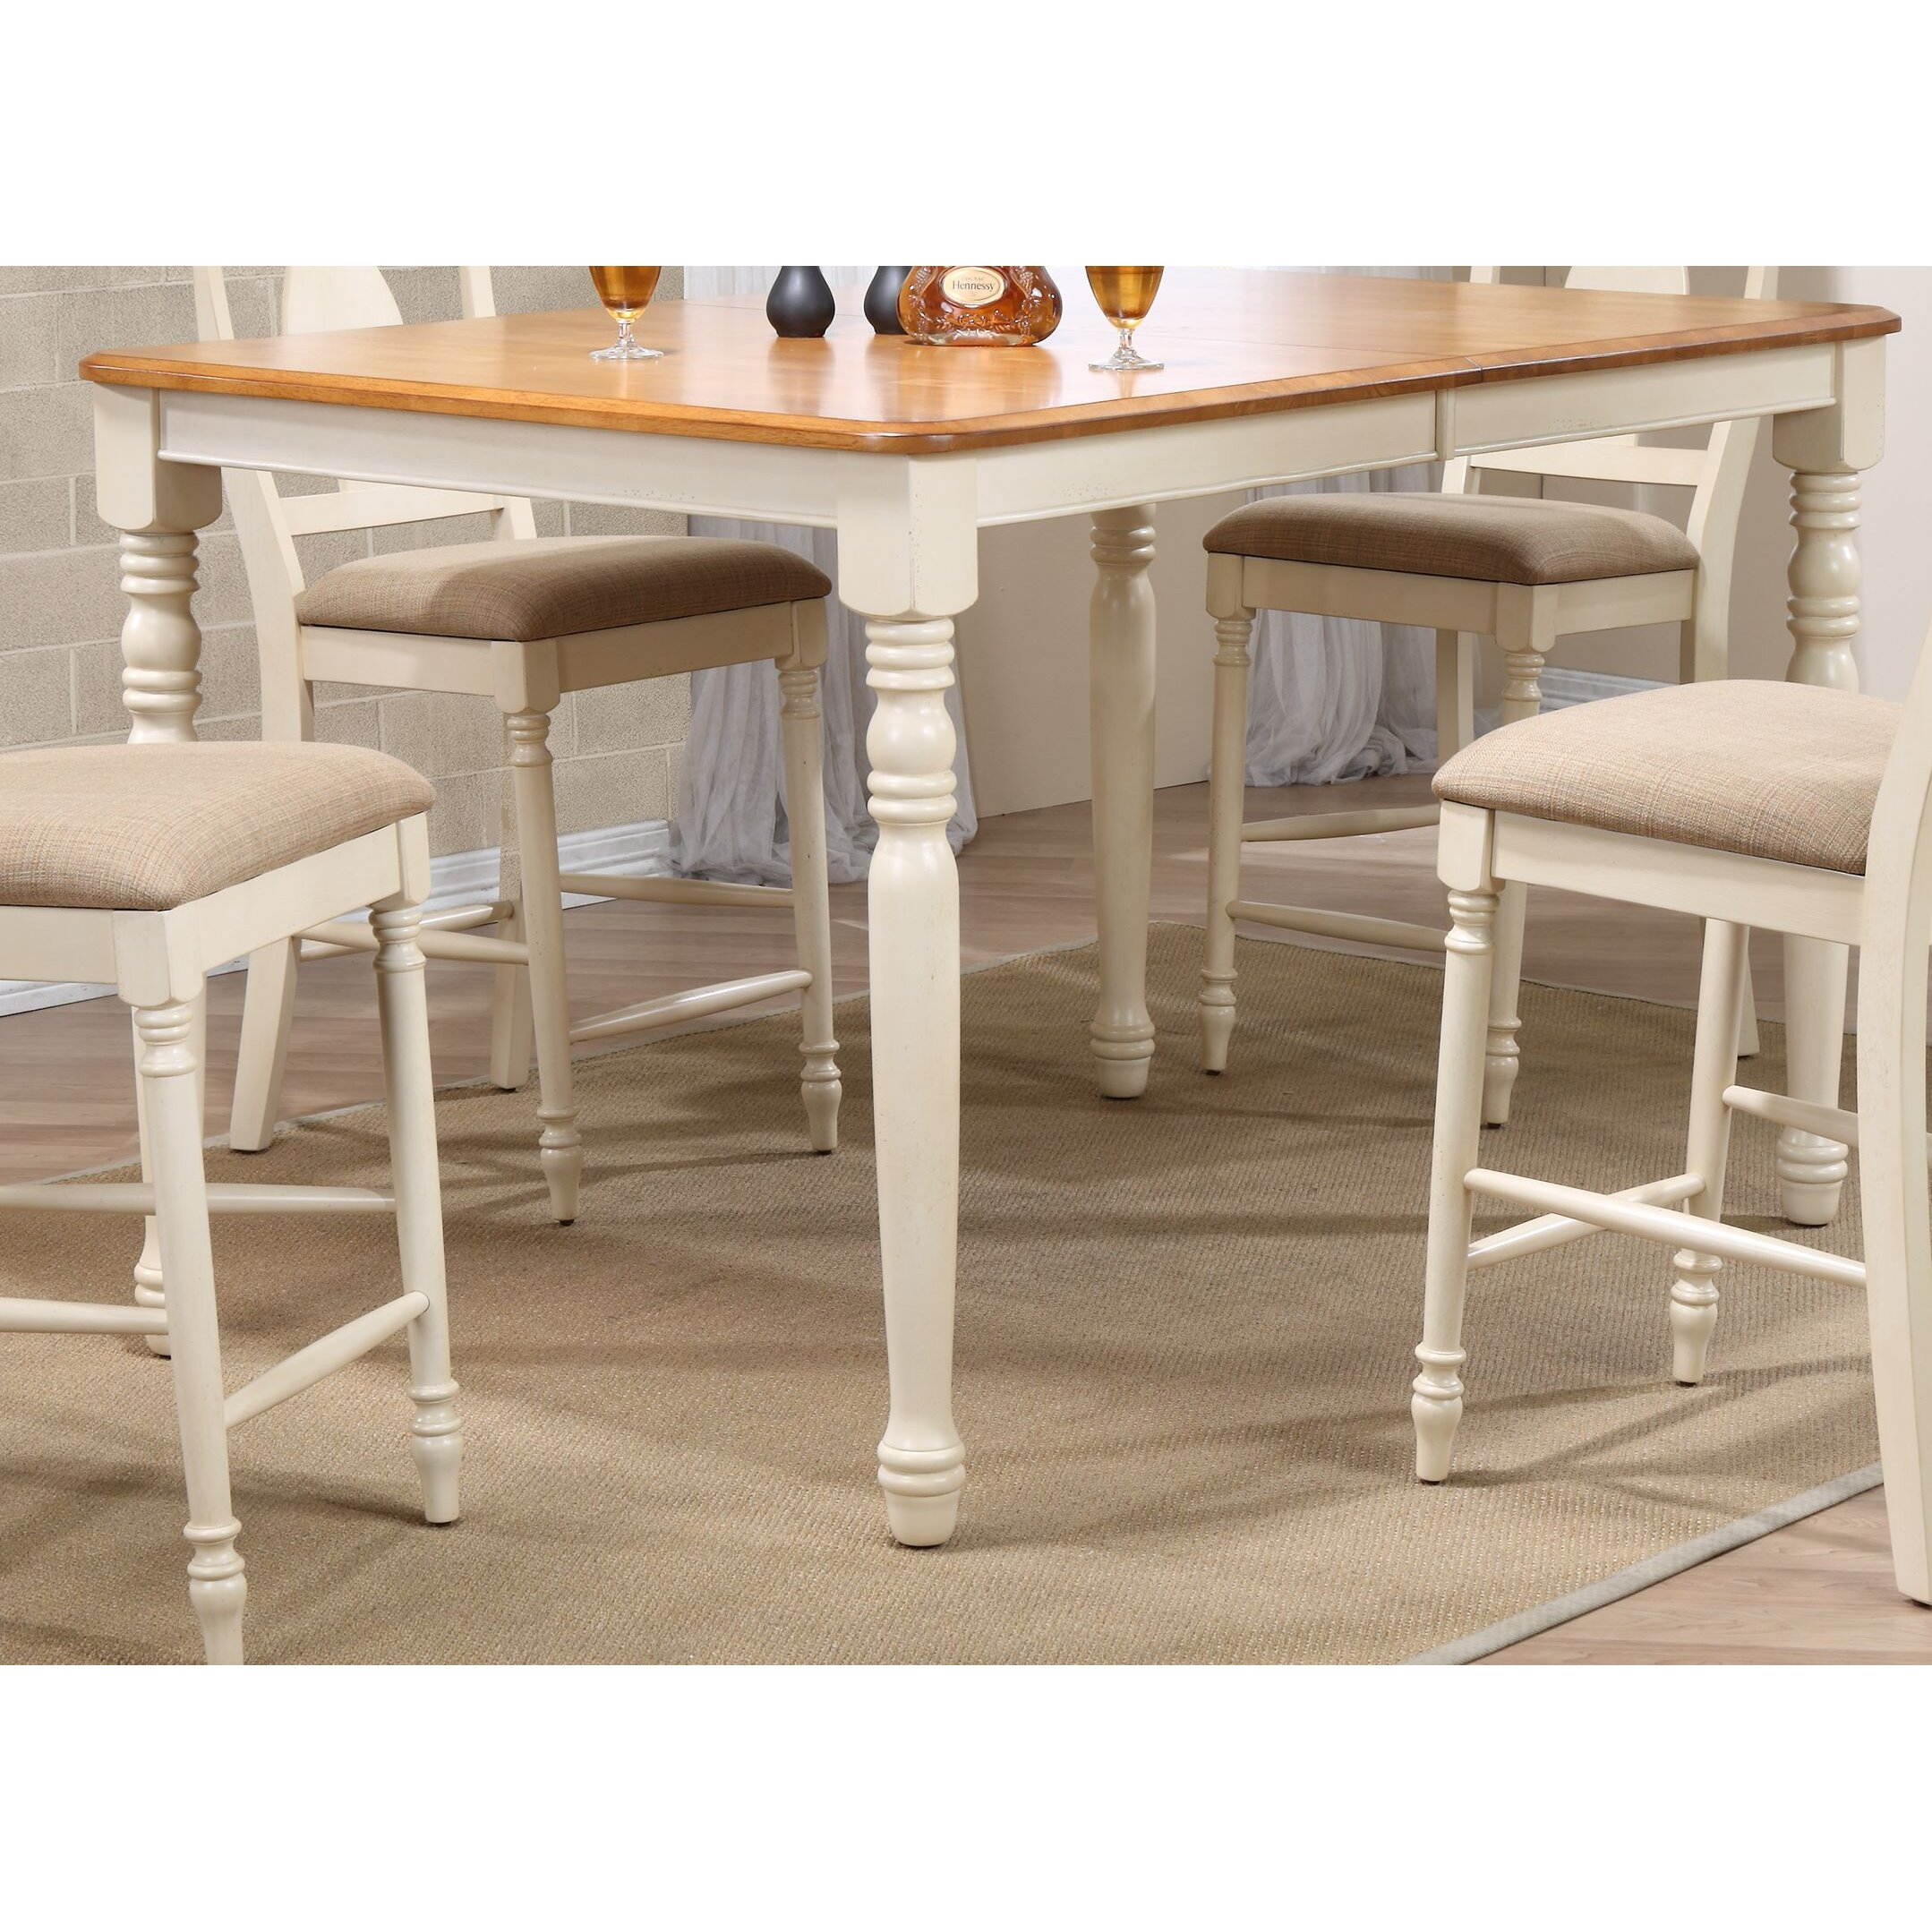 Iconic furniture counter height pub table wayfair for Iconic tables